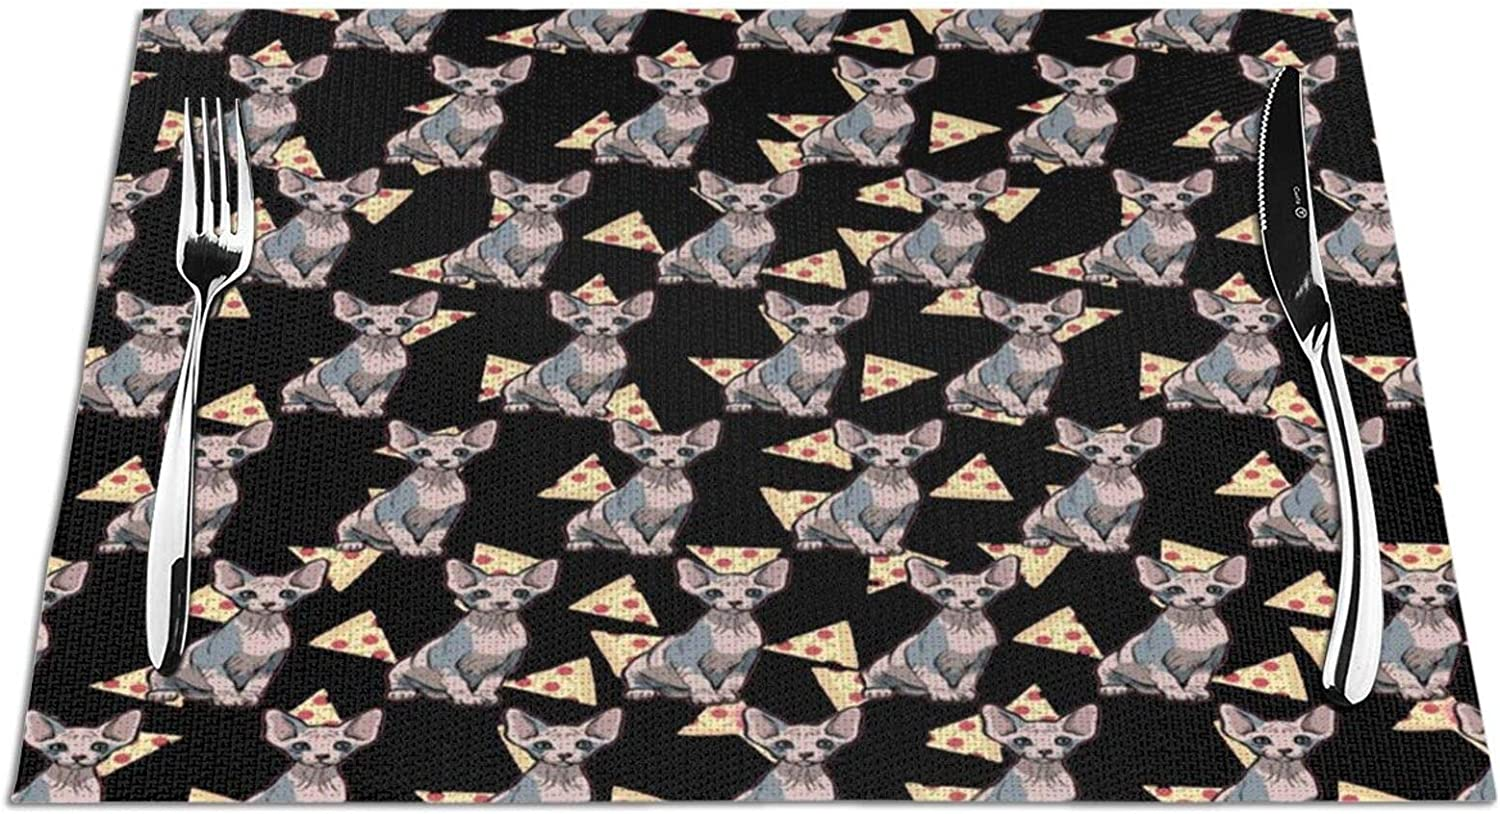 Pizza Food Sphynx Cat Placemat, Woven Non-Slip Insulation Placemats, Heat-Resistant Stain Resistant Anti-Skid Washable PVC Table Mats